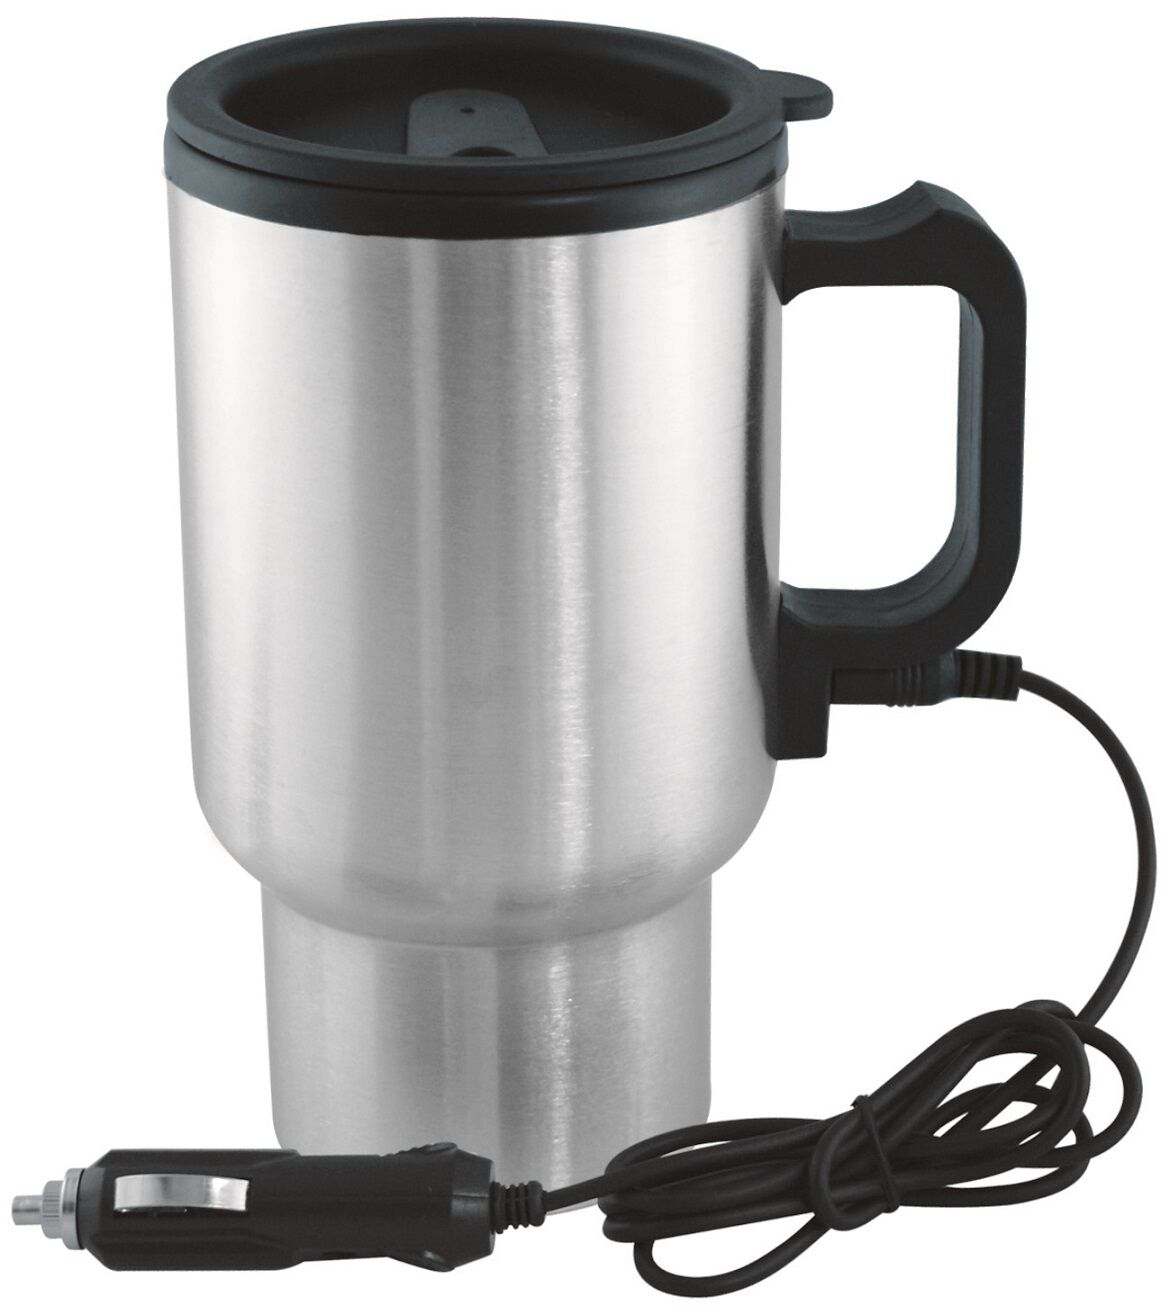 12V in-car thermos thermique chauffé tasse voyage Tasse Camping Caravaning café   thé